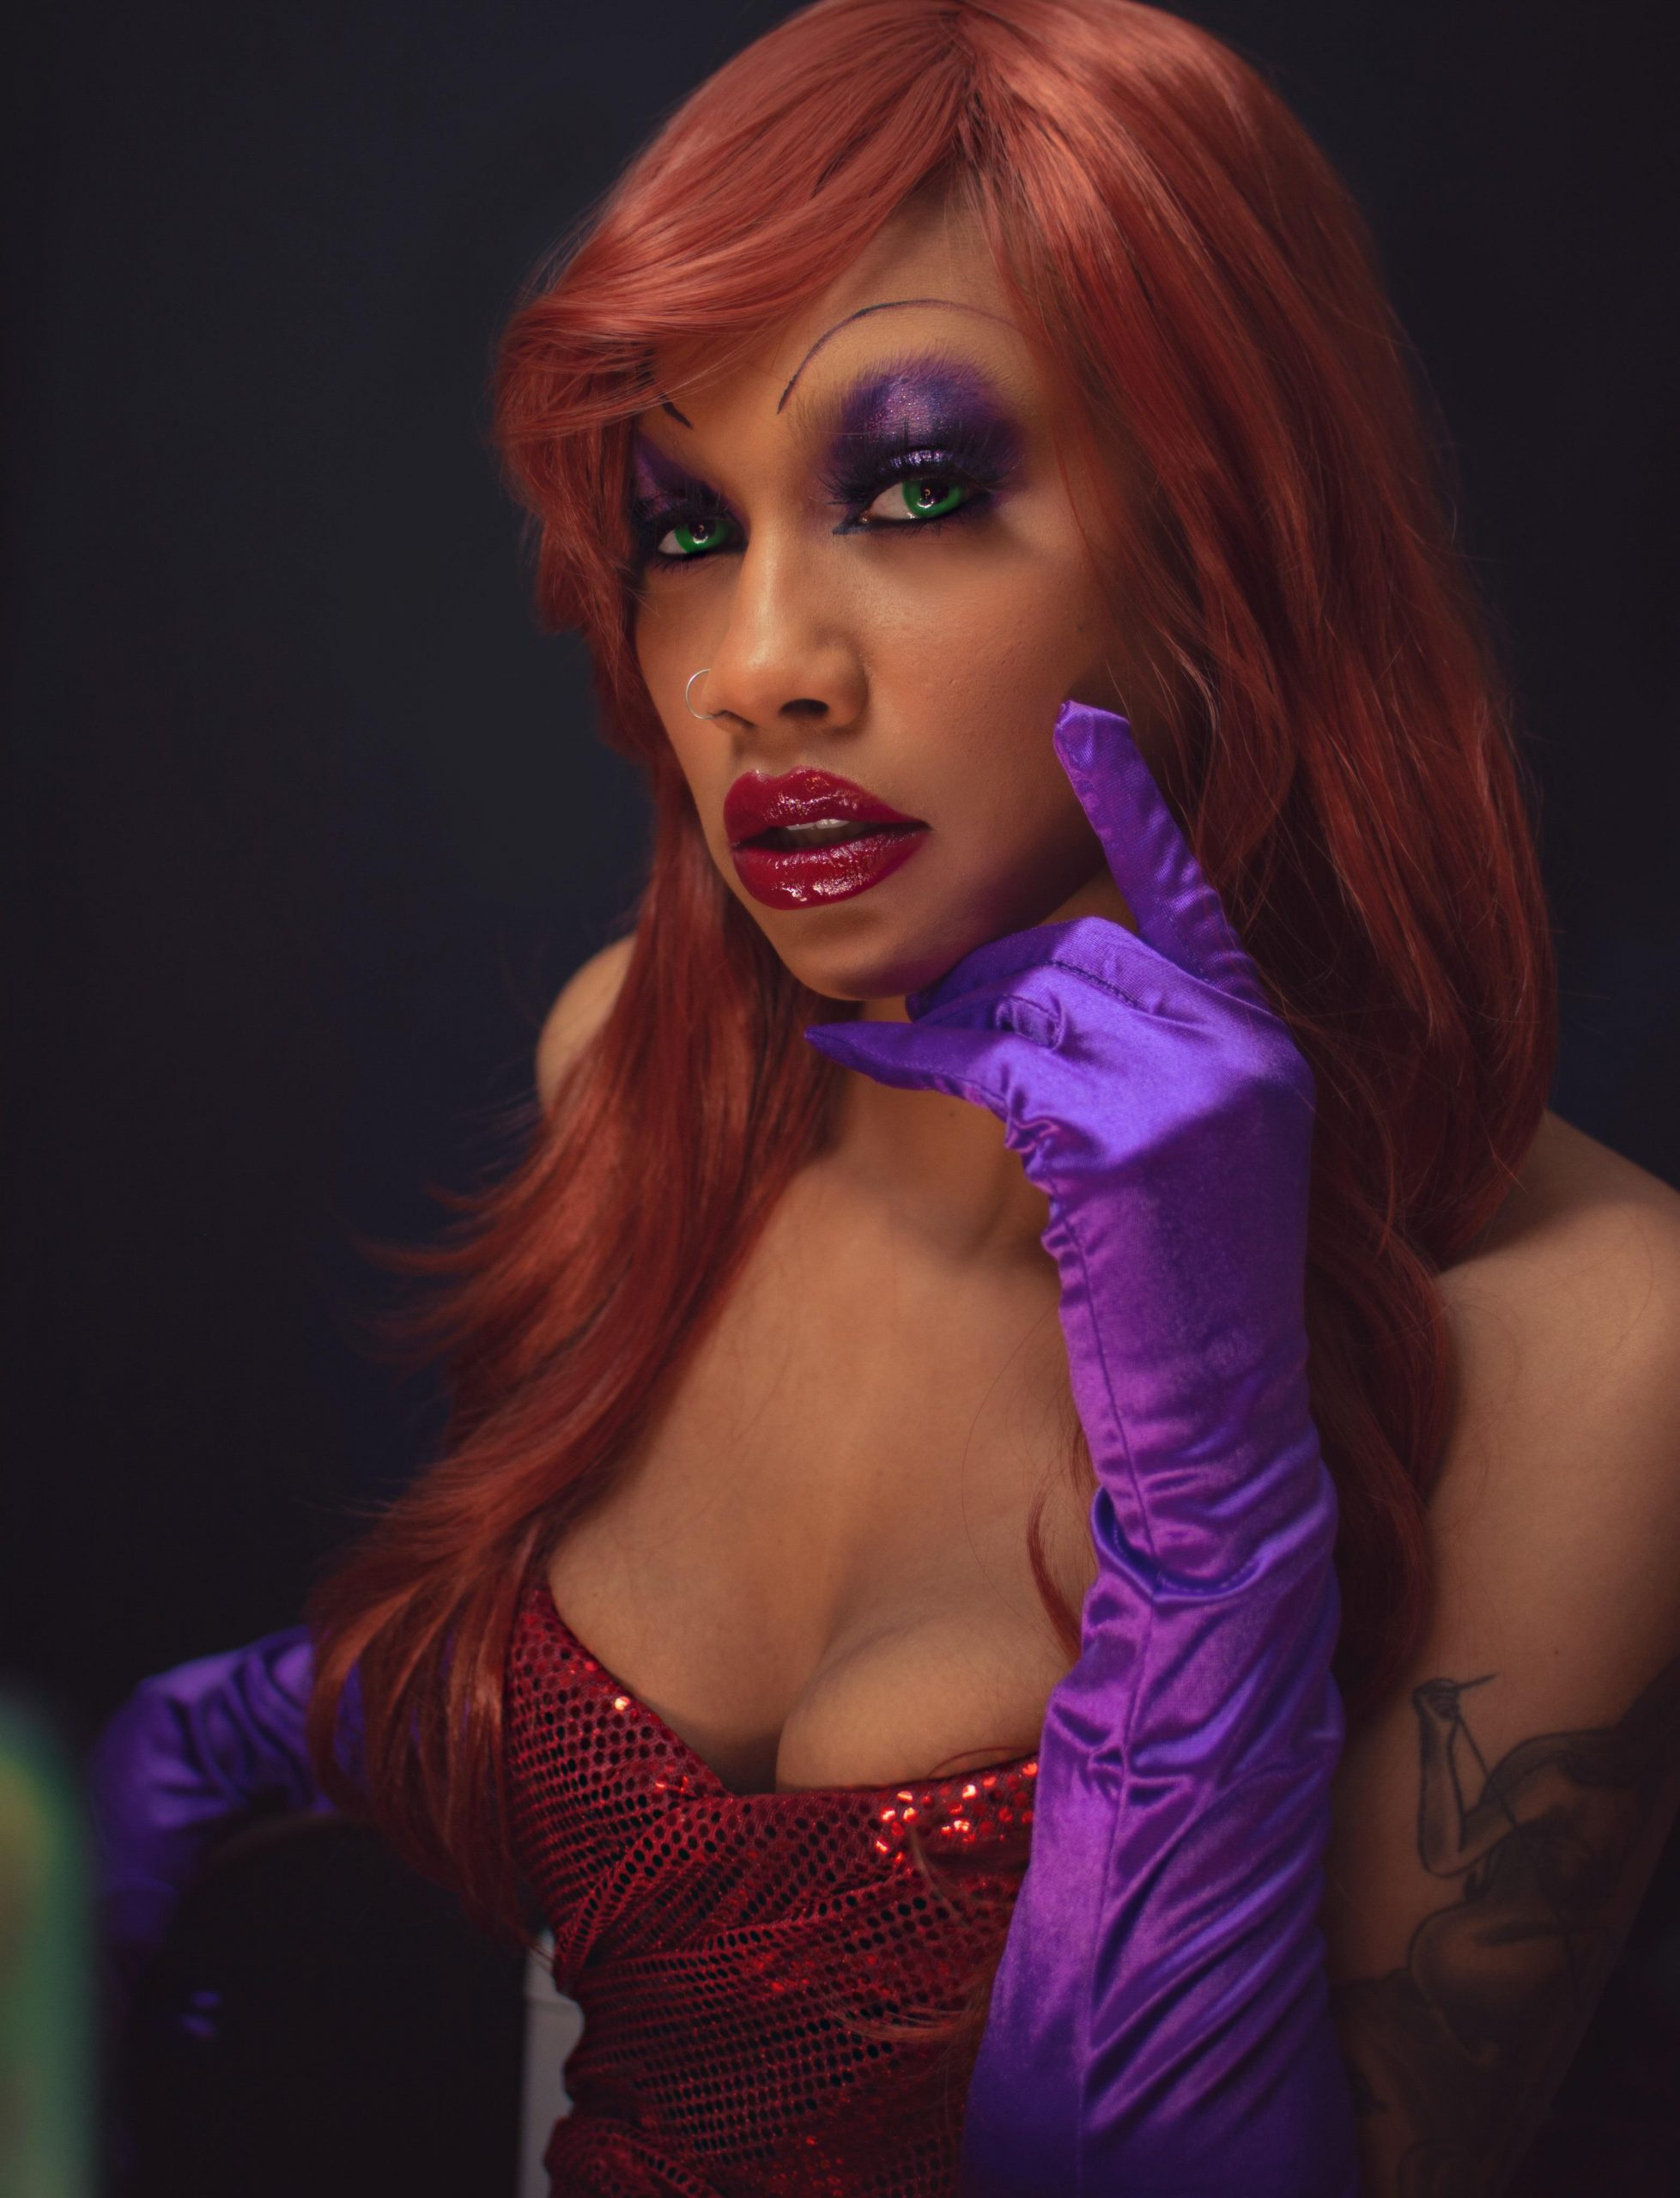 Jessica Rabbit By Self @naught_3